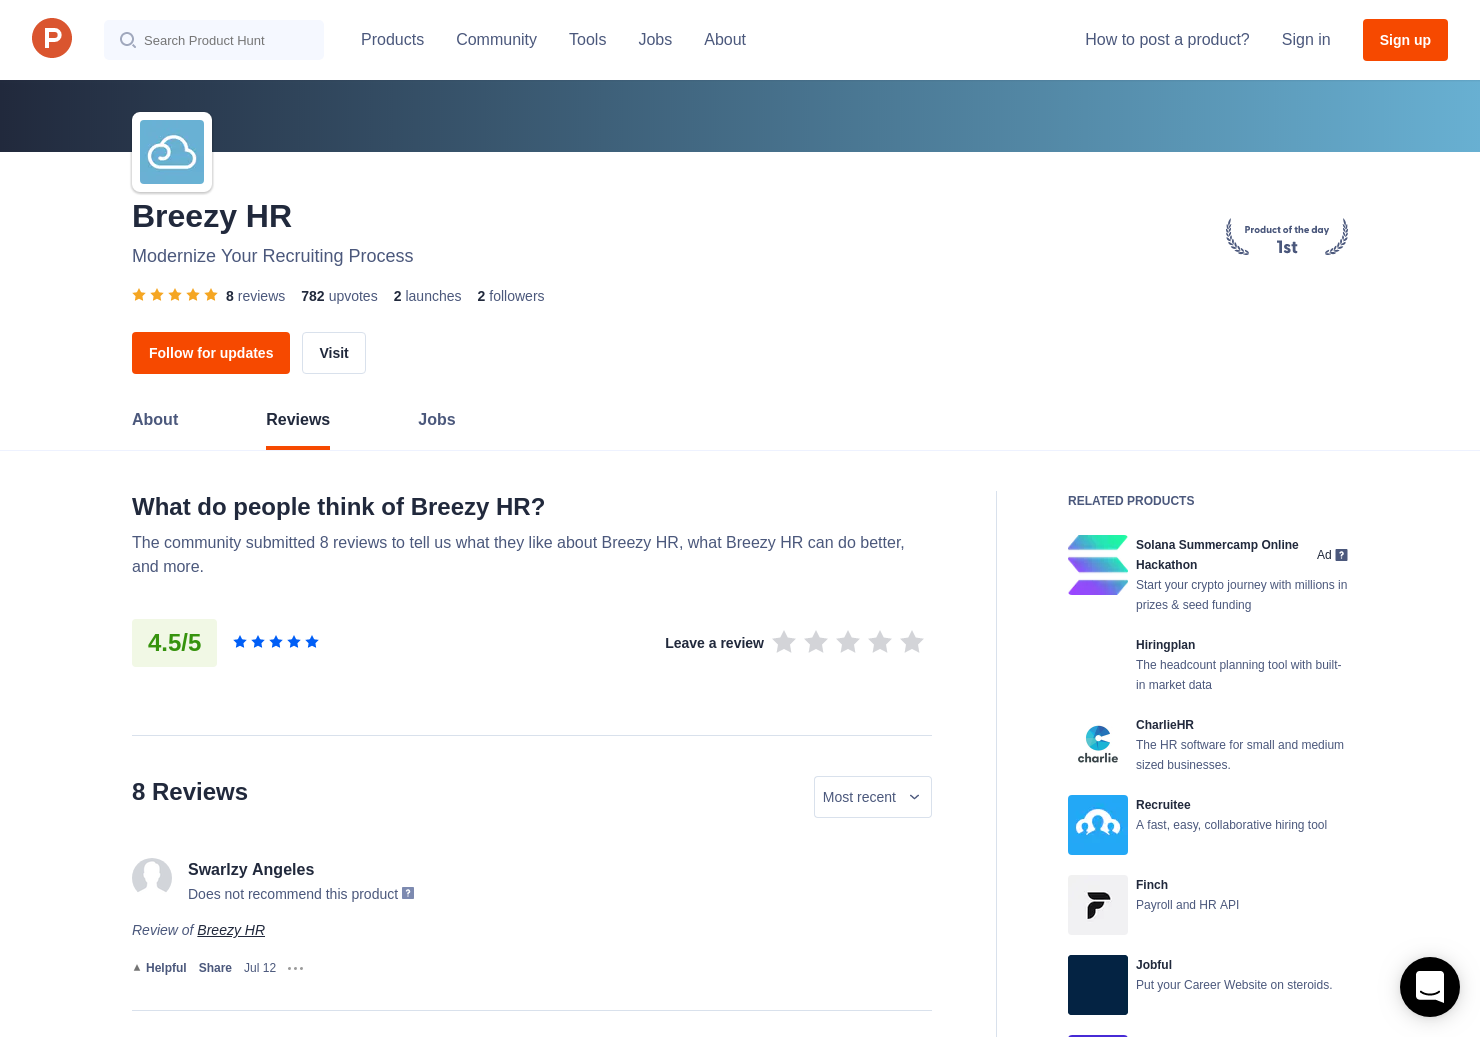 Breezy HR - Modernize Your Hiring Process Reviews on Product